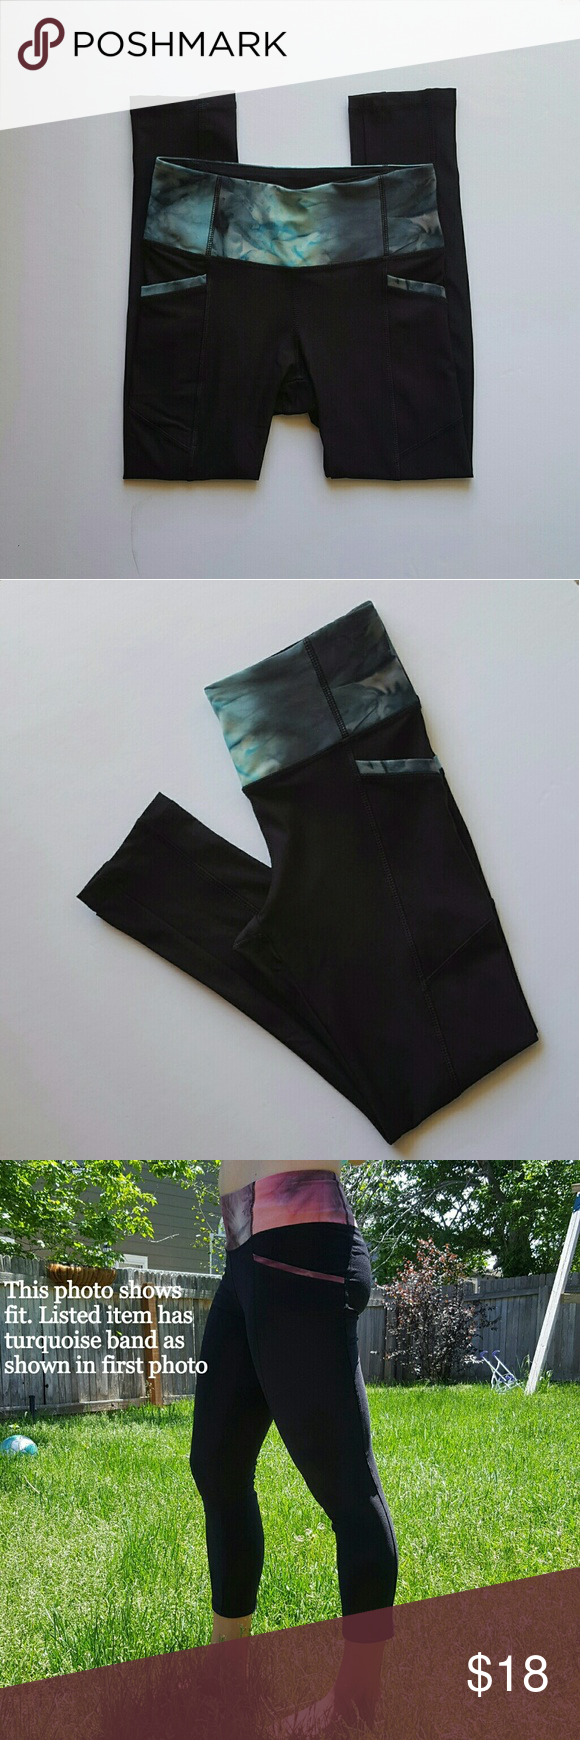 fd6a260d1a NWOT Zenana Outfitters Compression Leggings Black with mottled turquoise  band and pocket trim. Third picture shows the same style of leggings being  modeled ...